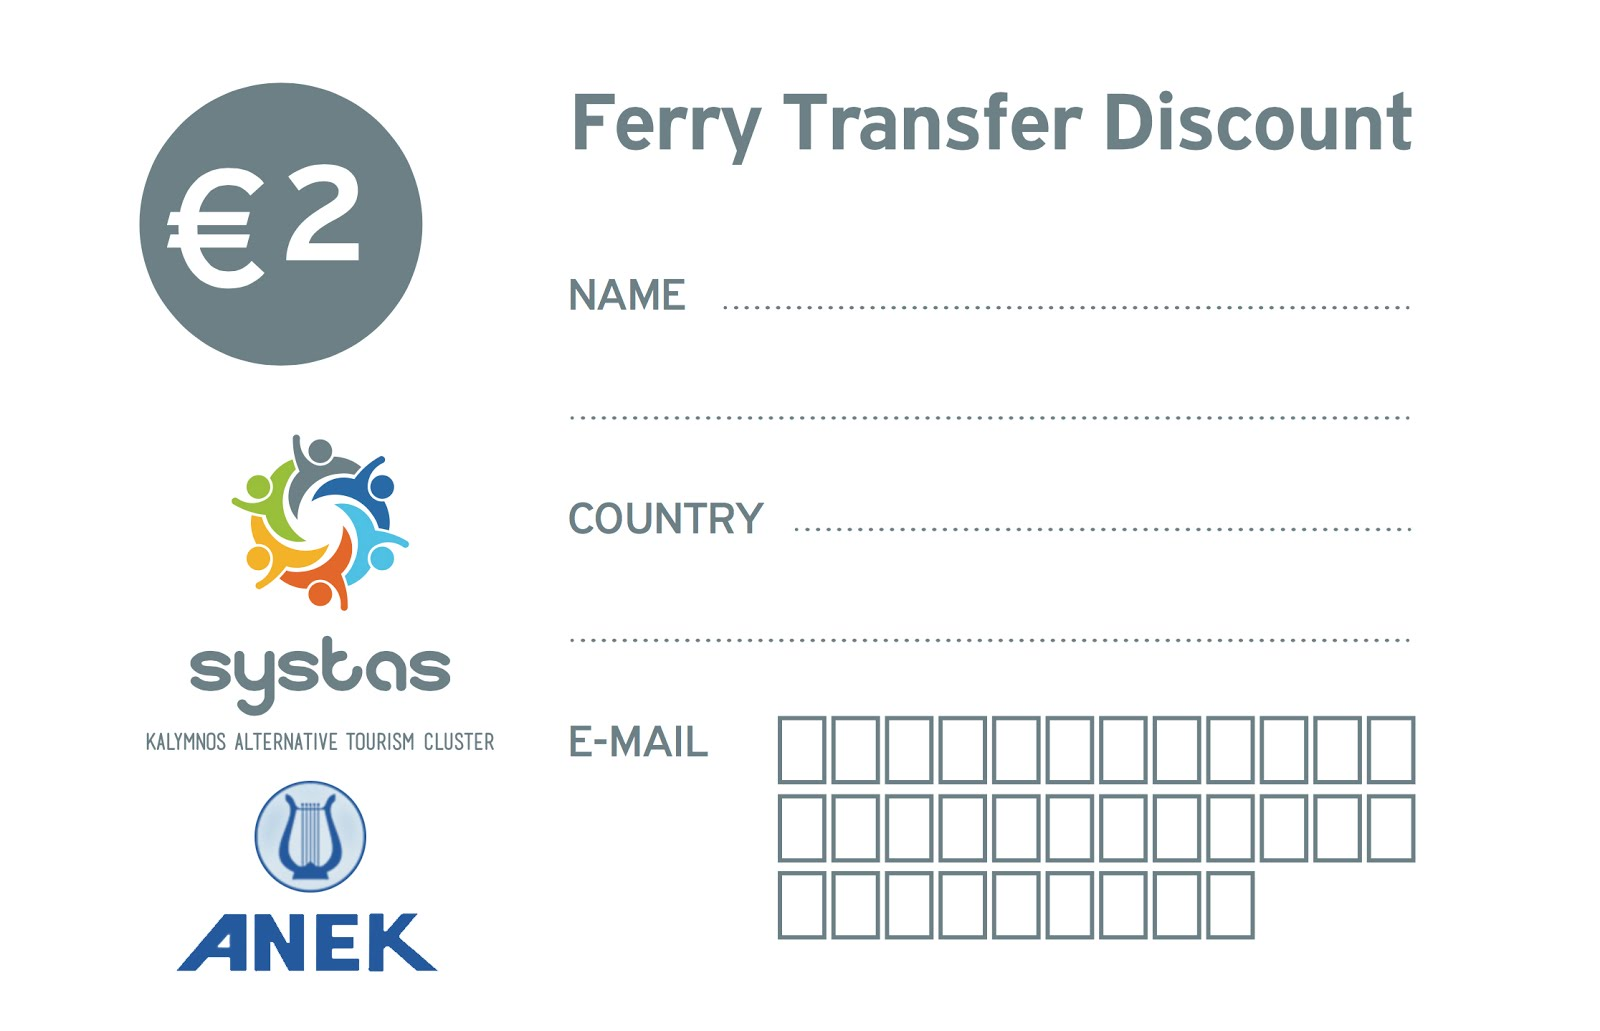 ANEK Ferry Transfer Discount